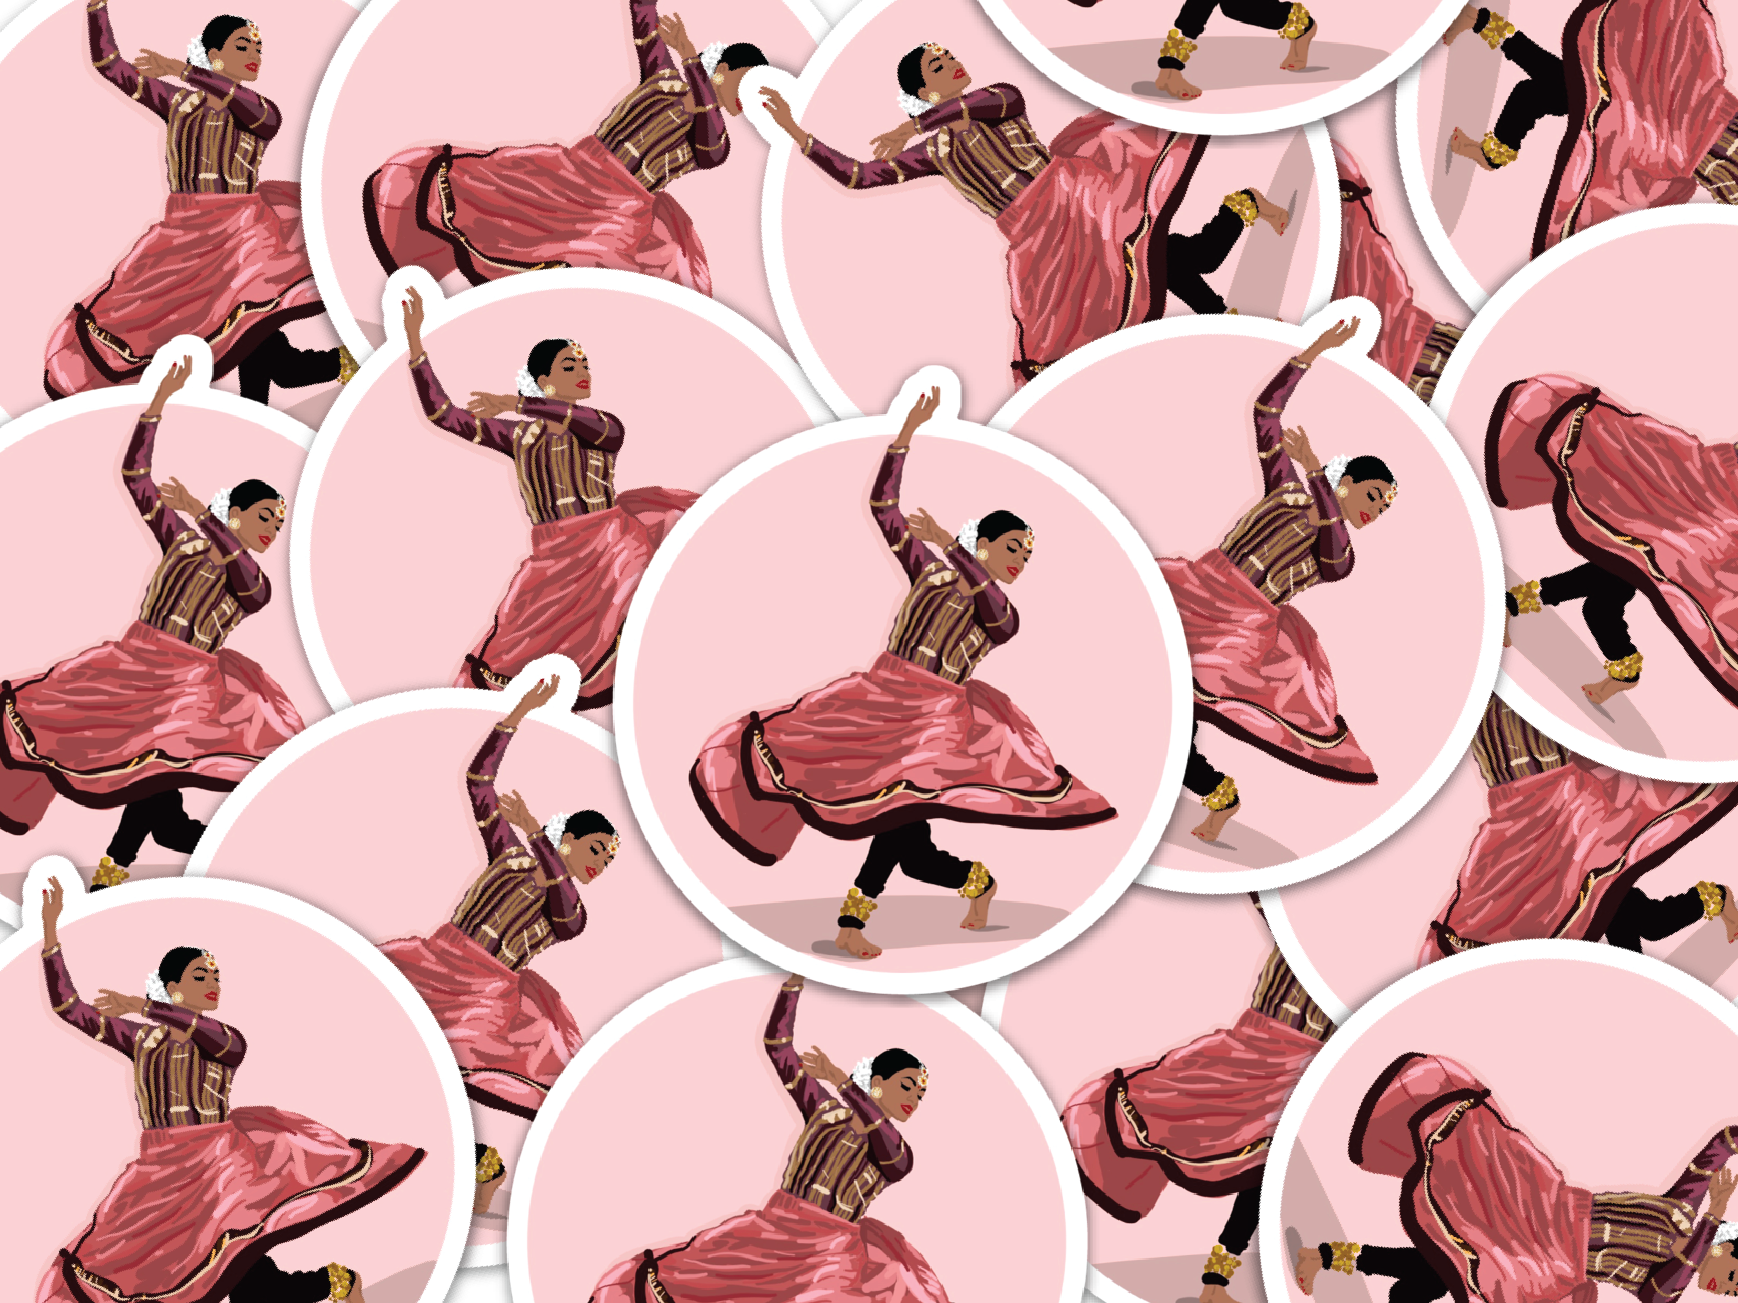 Stickers of an Indian dancer